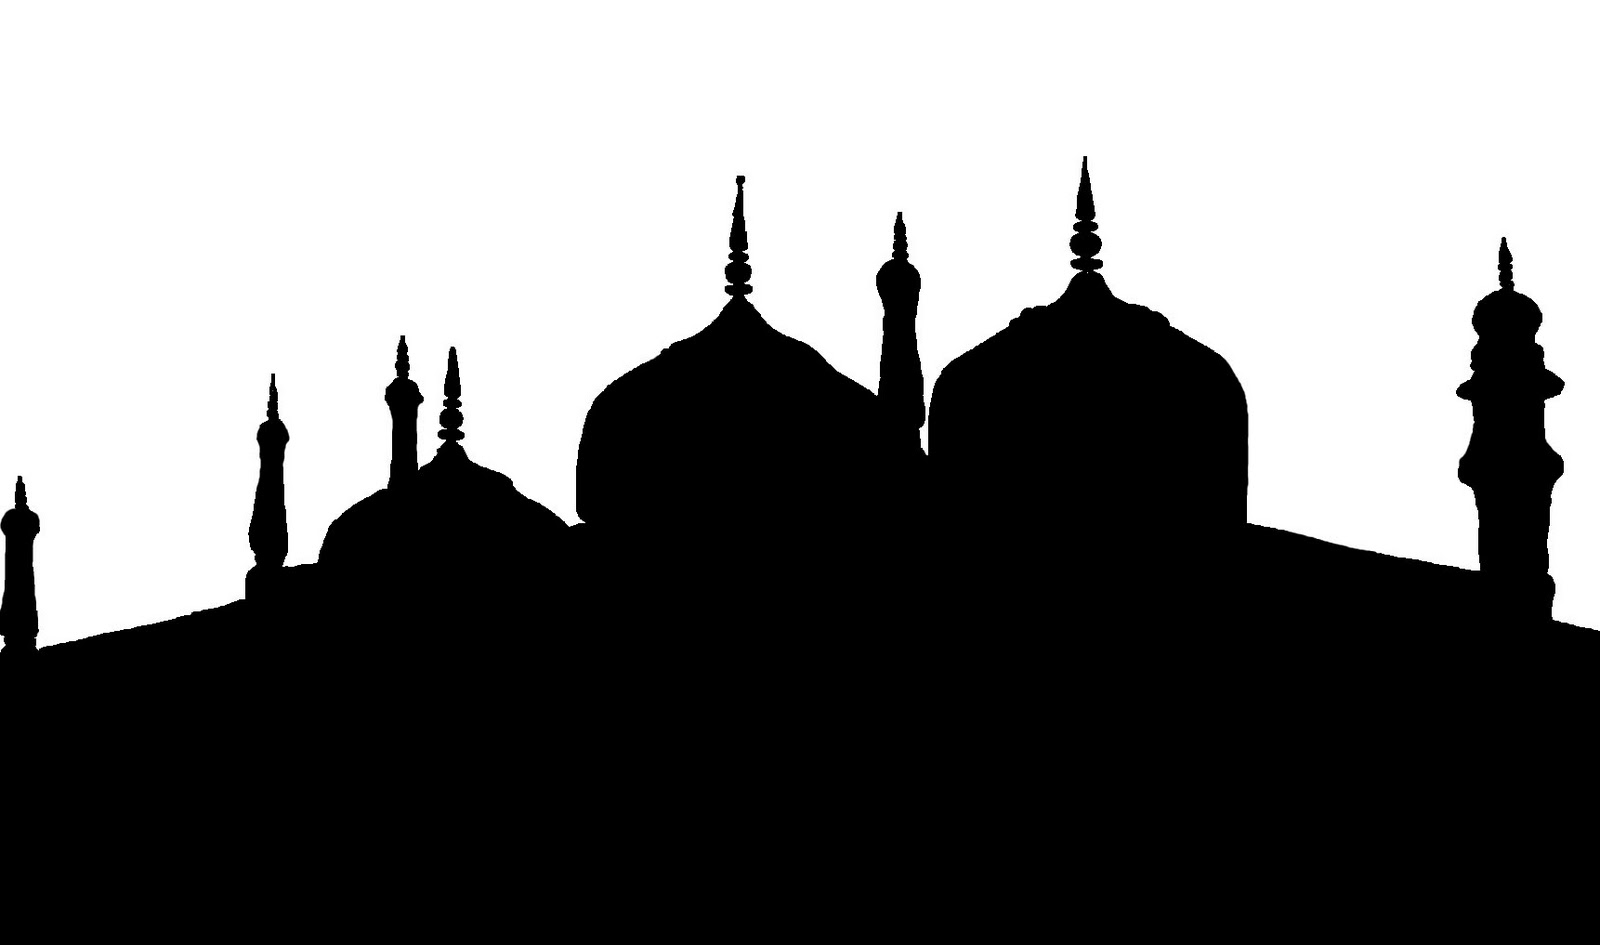 The next silhouette is an unfinished version of the same mosque above ...